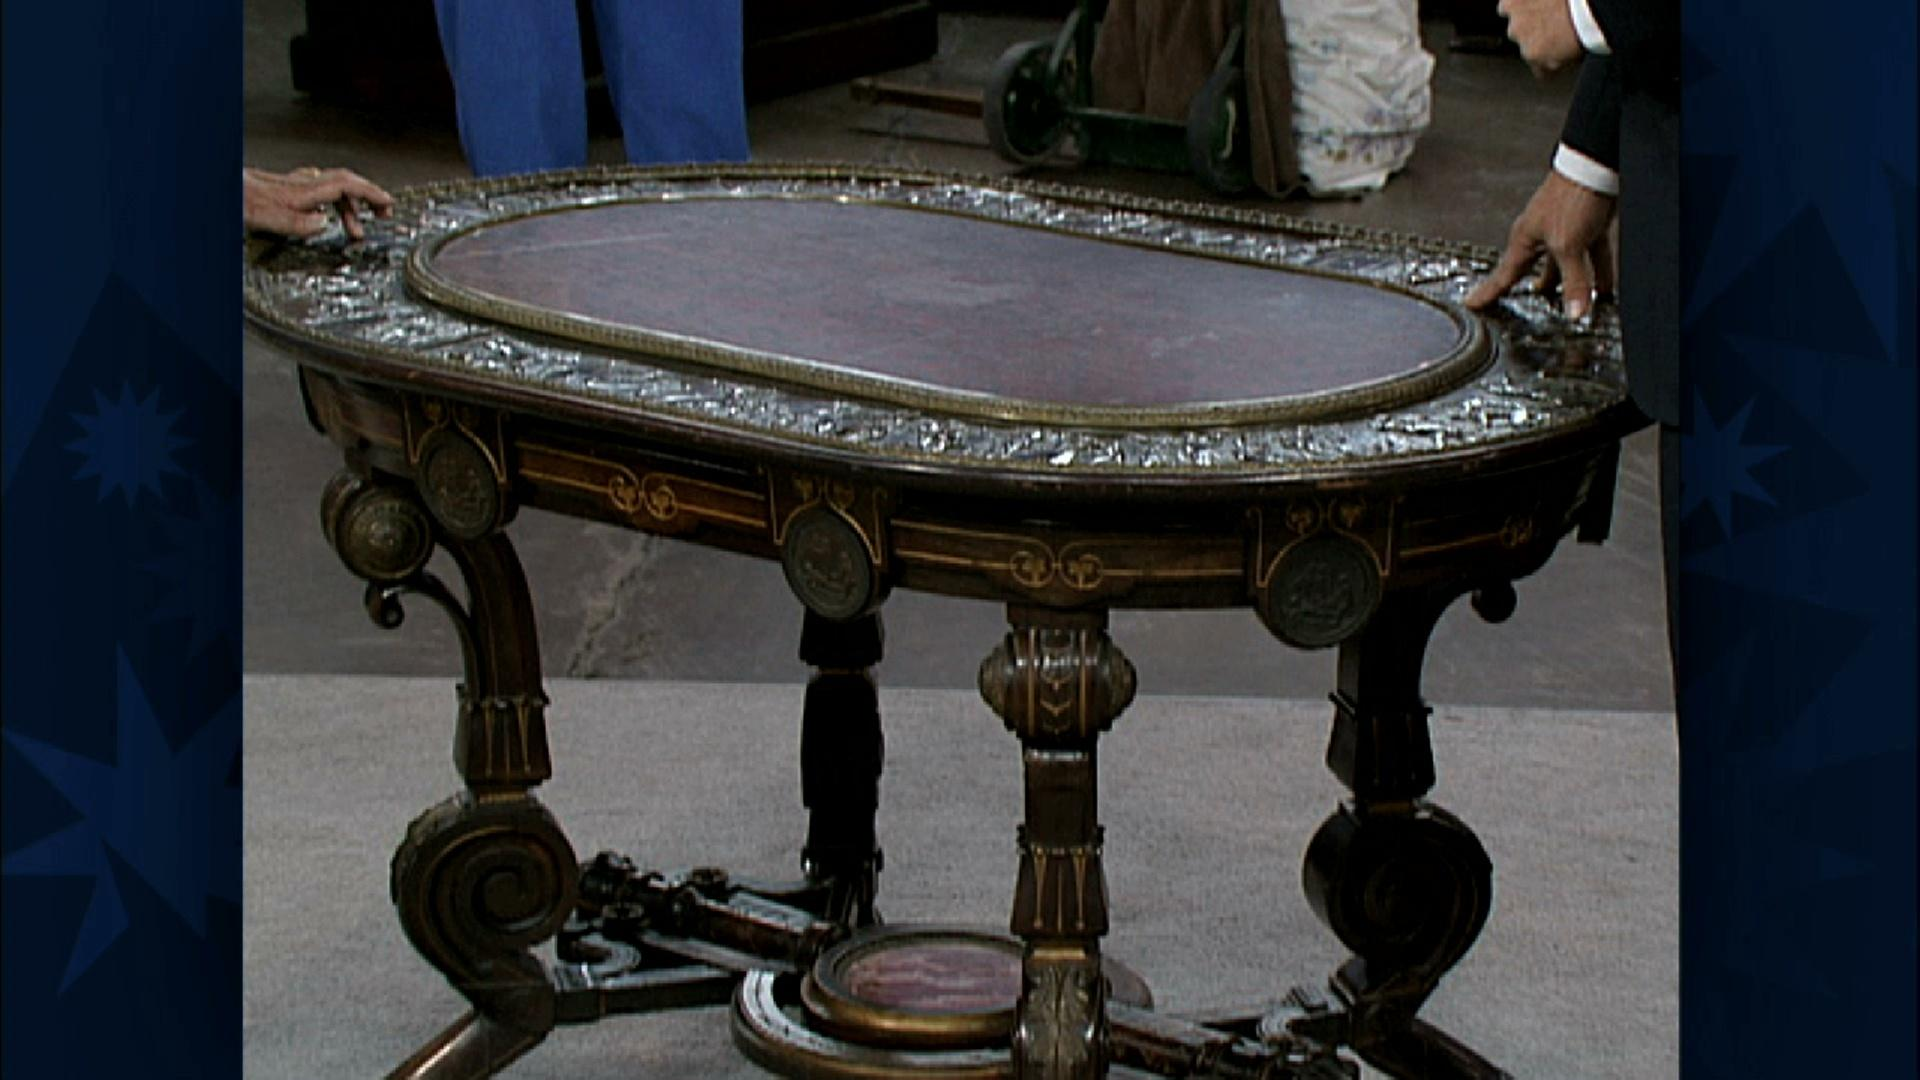 Antiques Roadshow Appraisal Pottier Stymus Furniture Ca 1870 Twin Cities Pbs